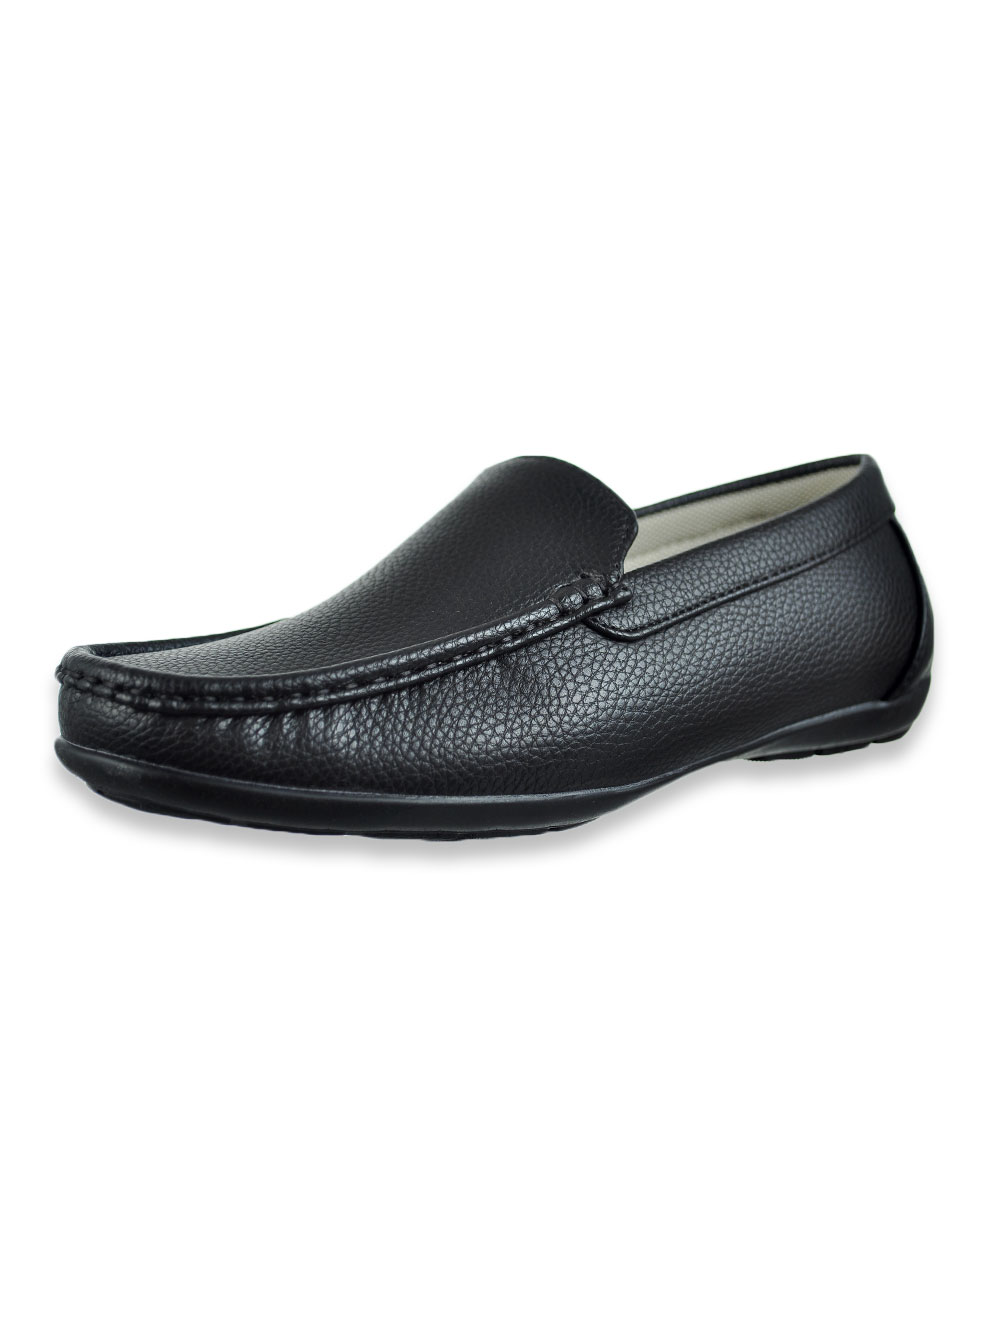 Dress Shoes Slip-On Closure